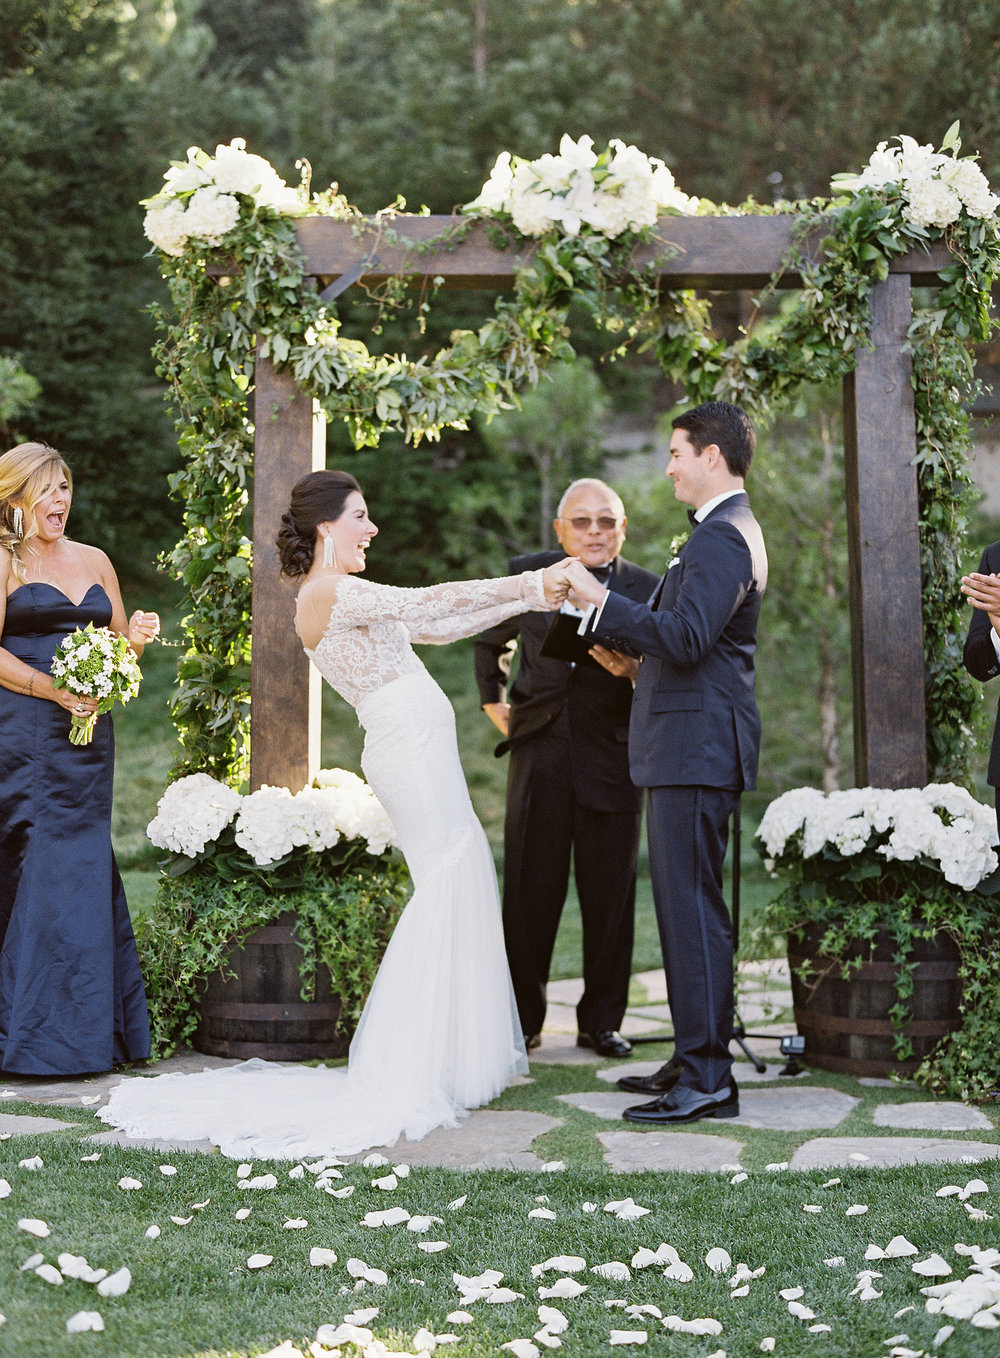 Meghan Mehan Photography - Carmel Valley Ranch Wedding 075.jpg